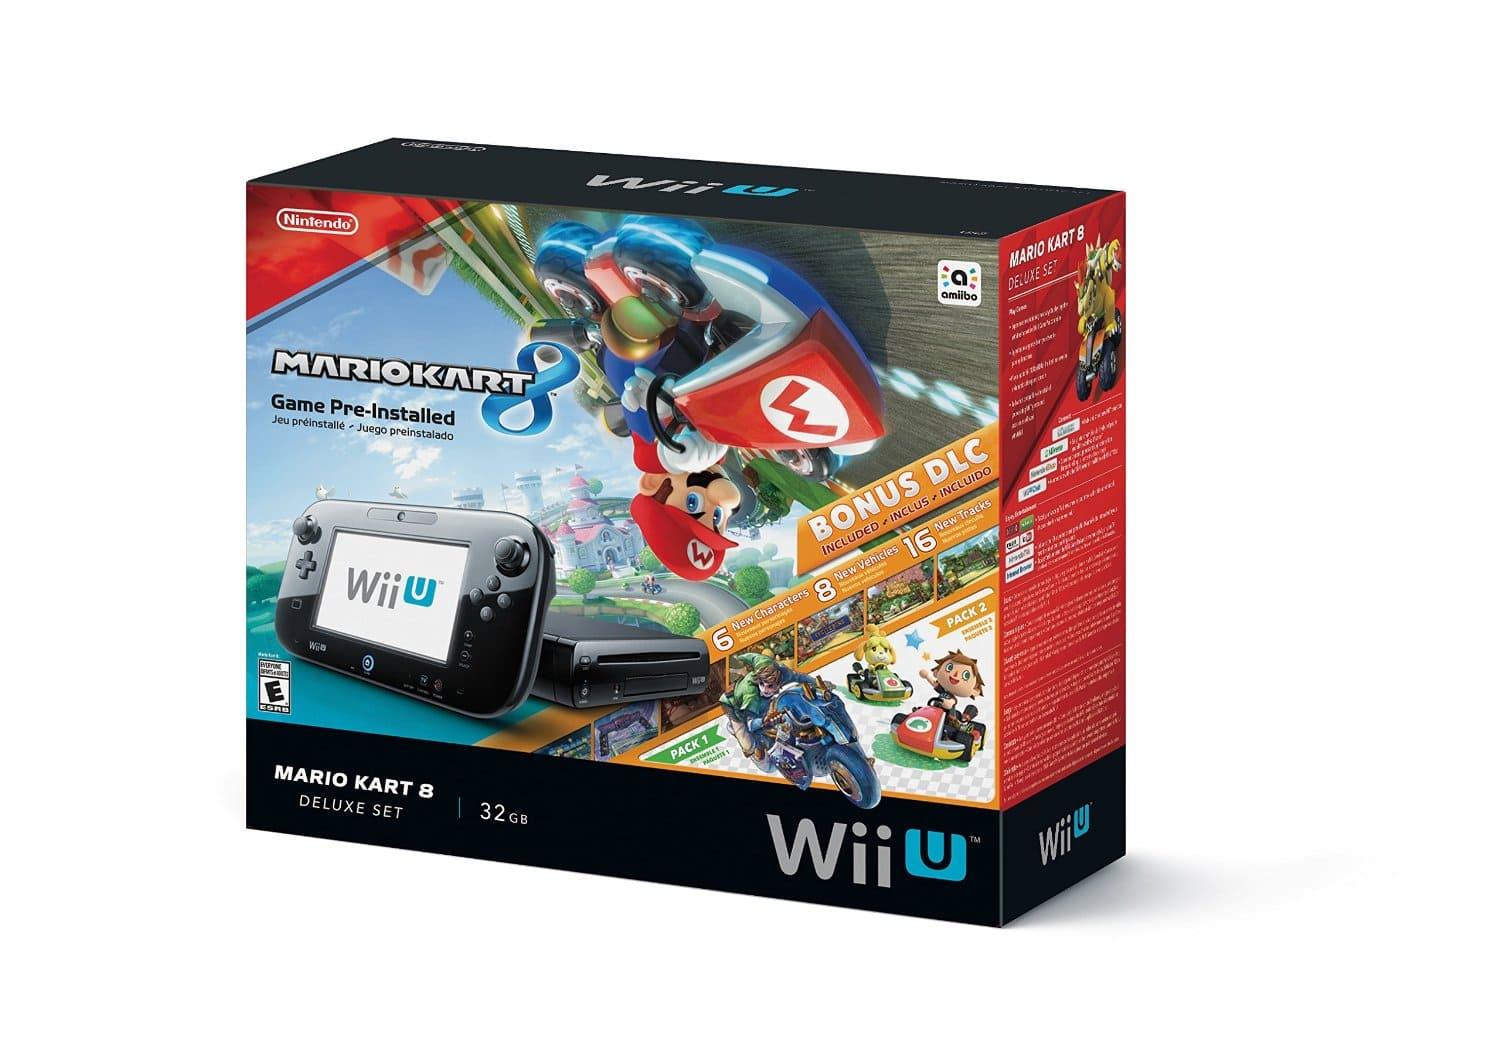 Nintendo Wii U Deluxe 32GB with Mario Kart 8 for $249.99 with free shipping at Amazon